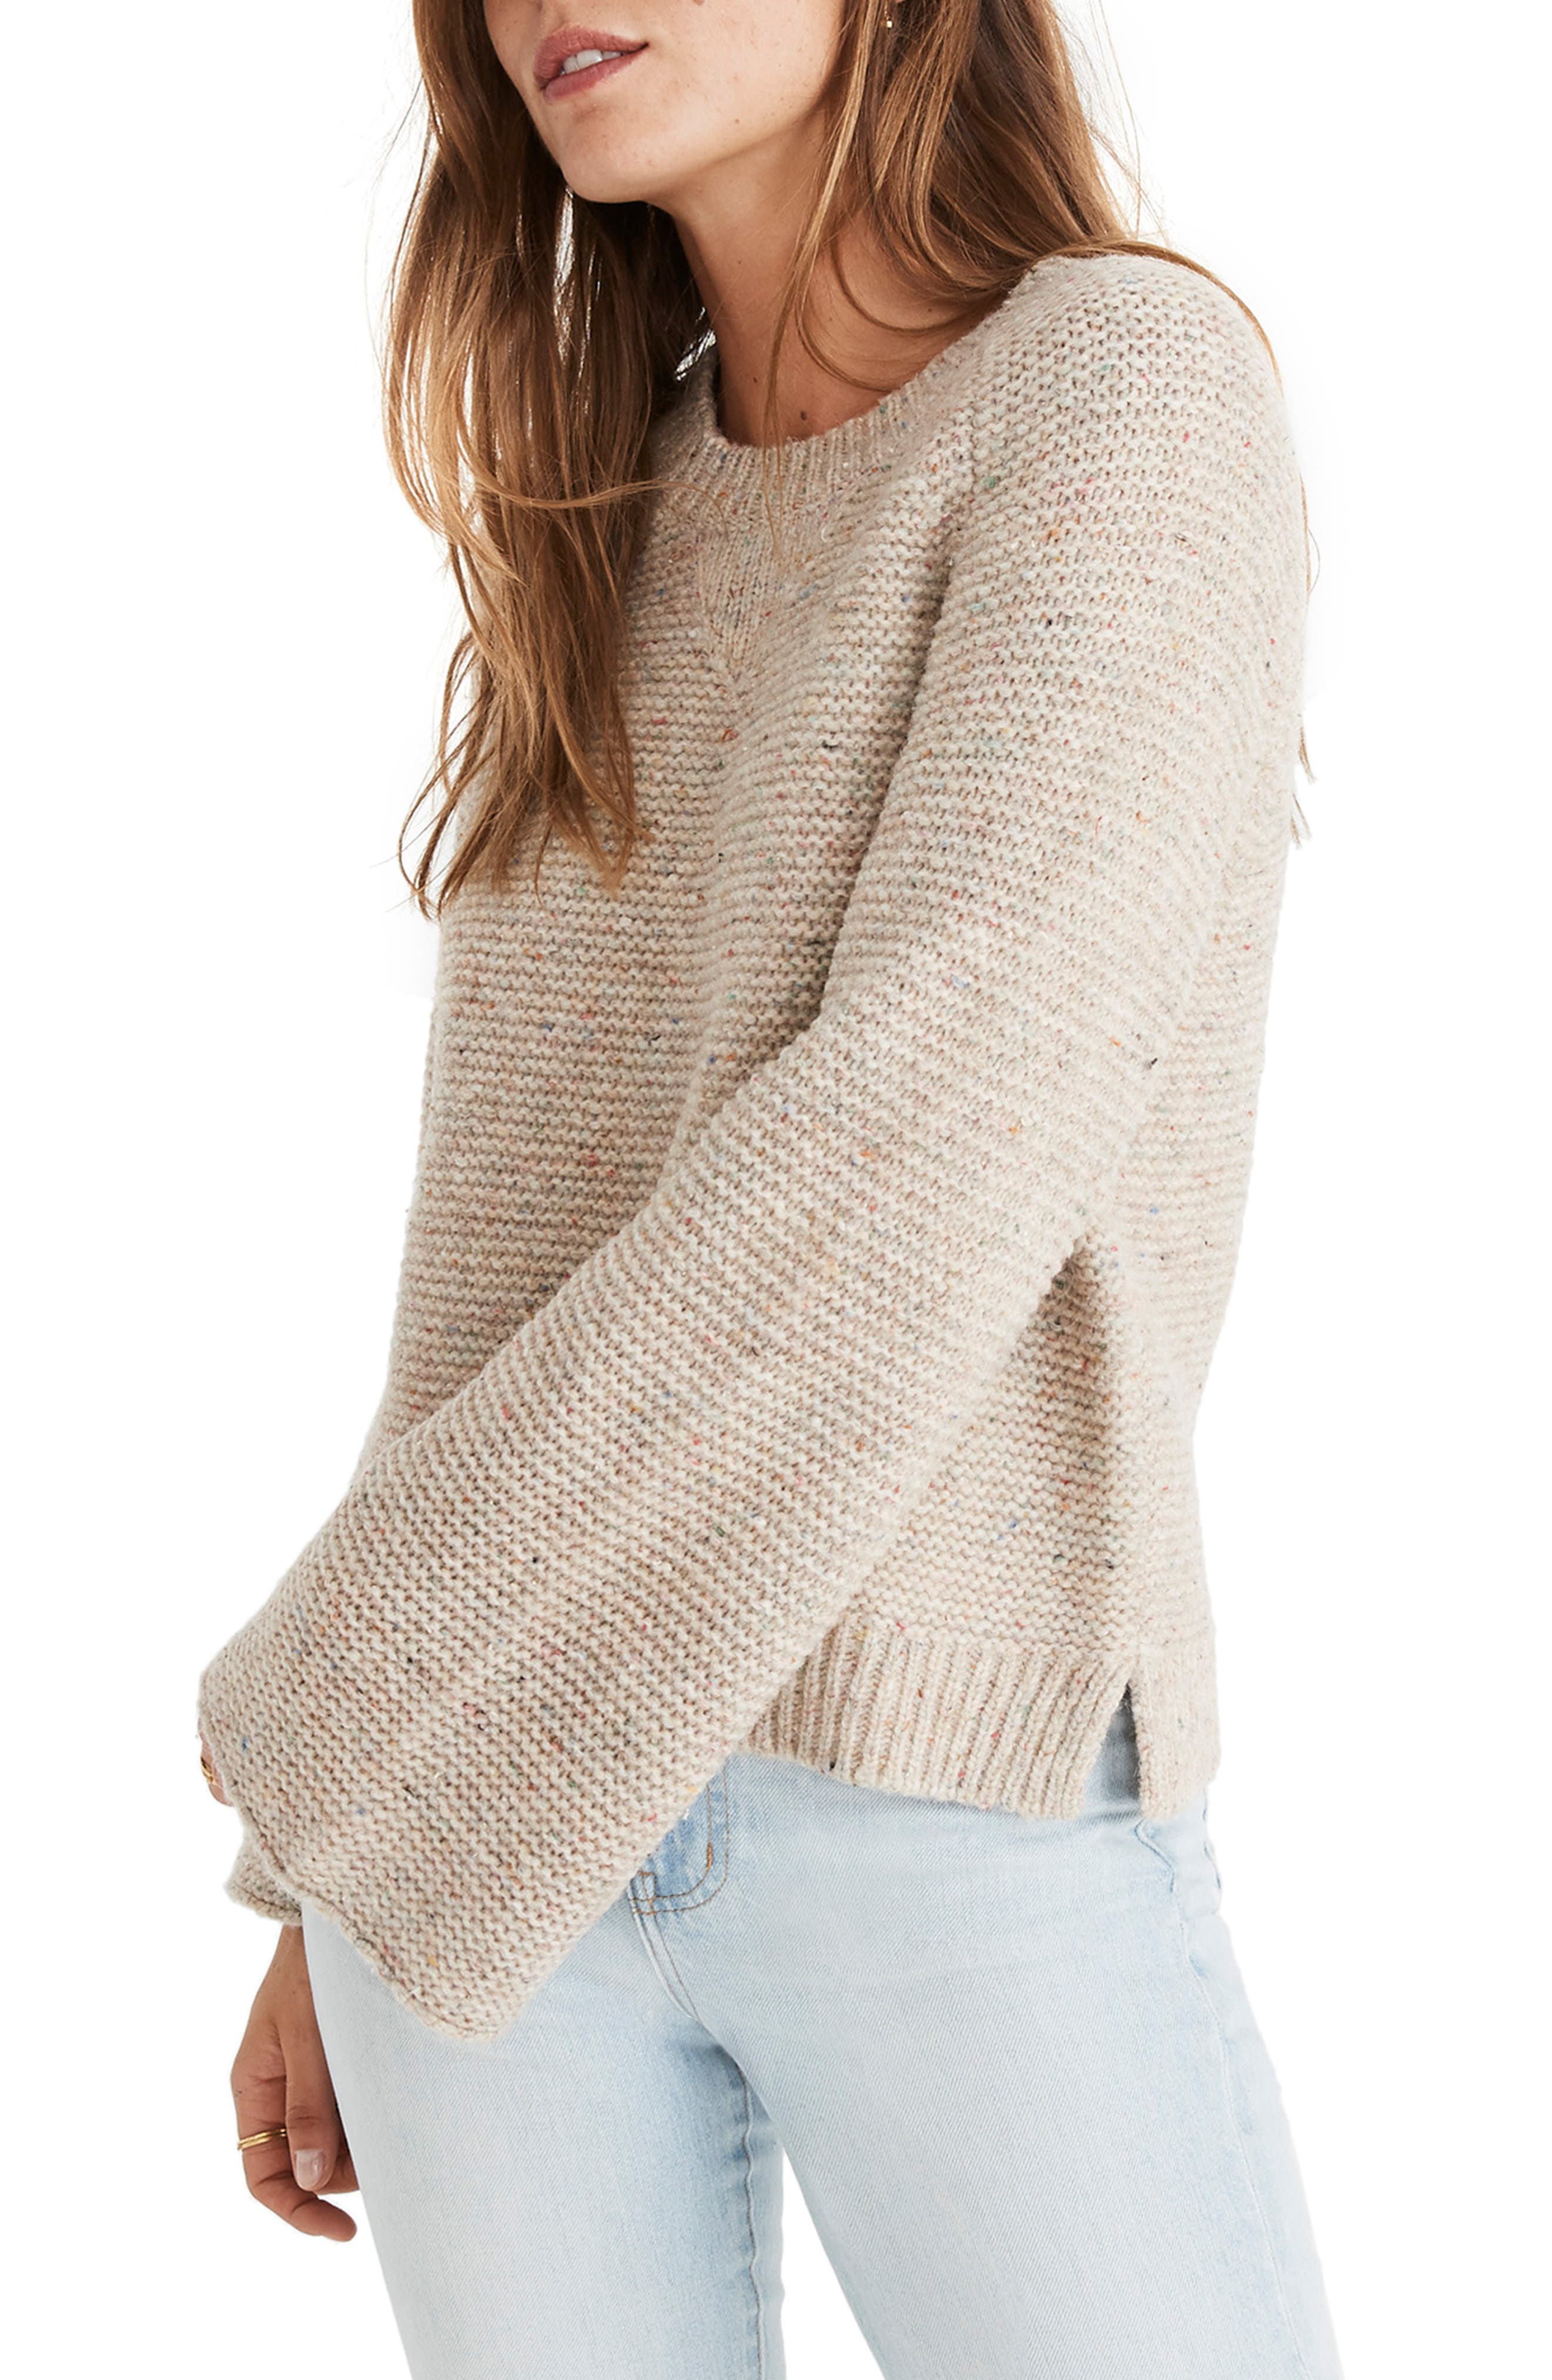 MADEWELL,                             Flecked Wide Sleeve Sweater,                             Alternate thumbnail 3, color,                             020